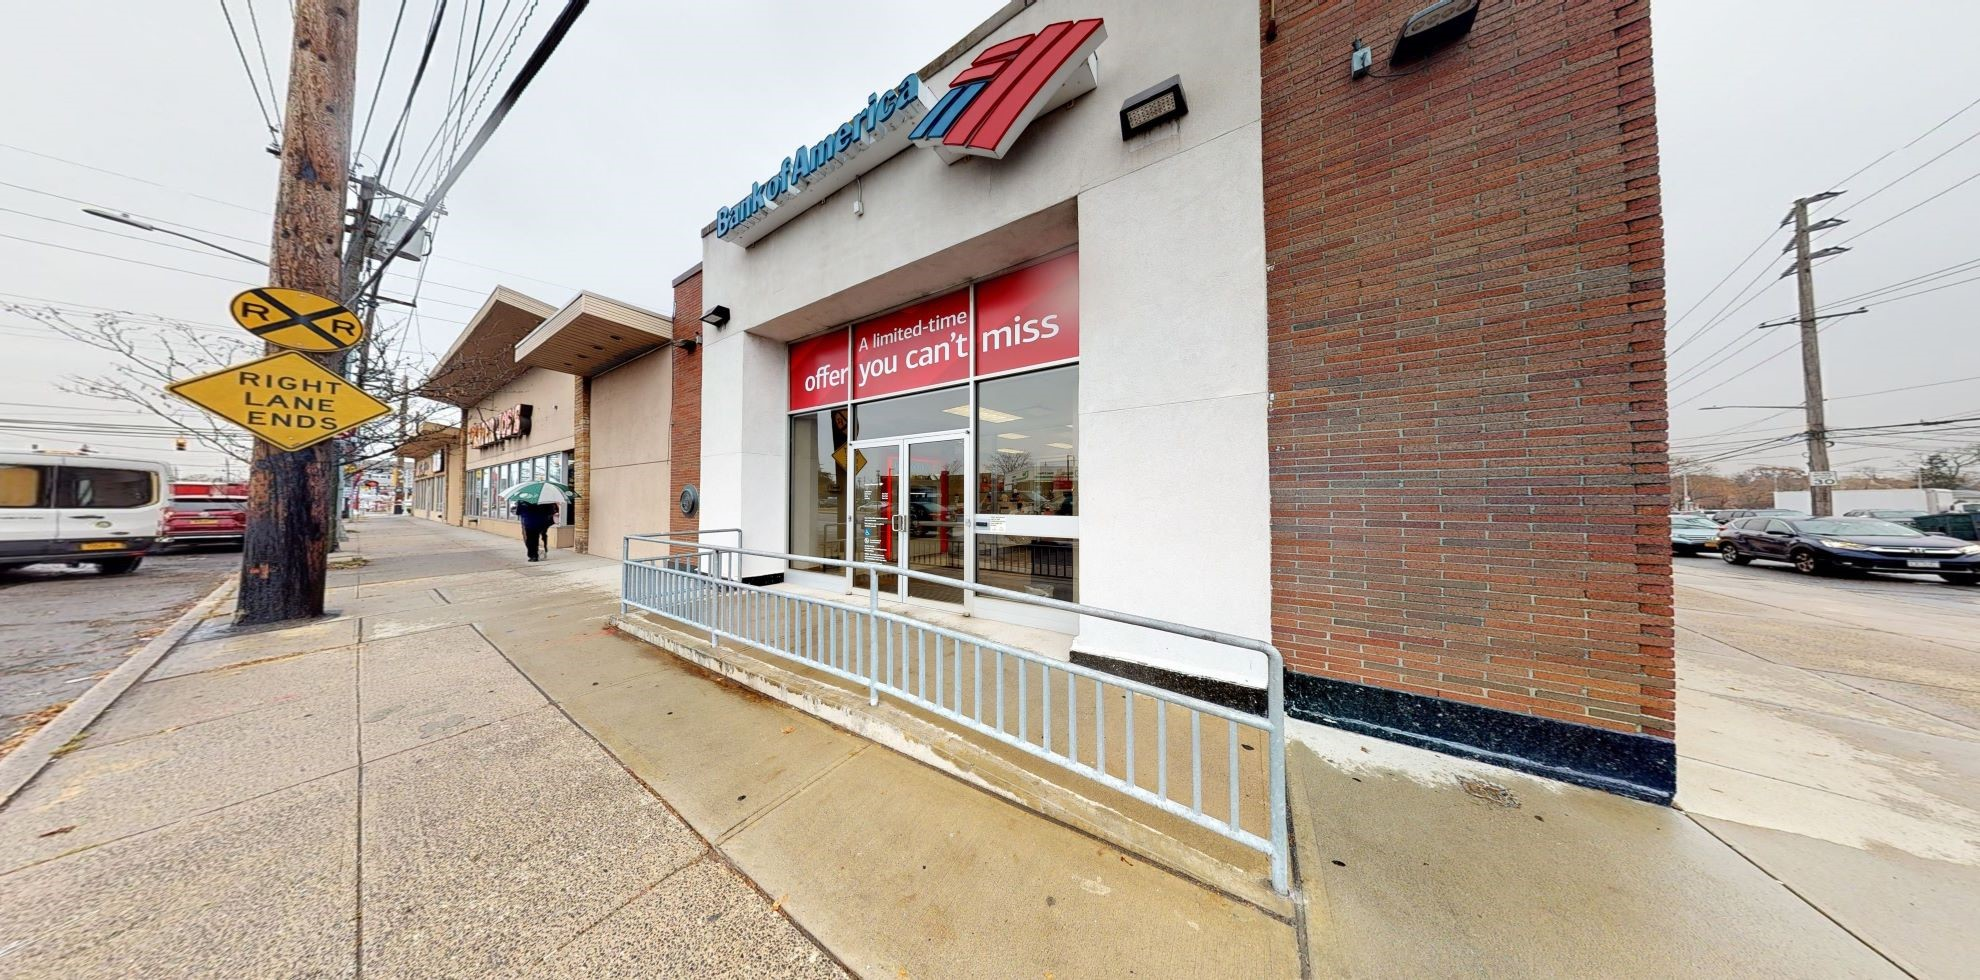 Bank of America financial center with walk-up ATM   1286 W Broadway, Hewlett, NY 11557